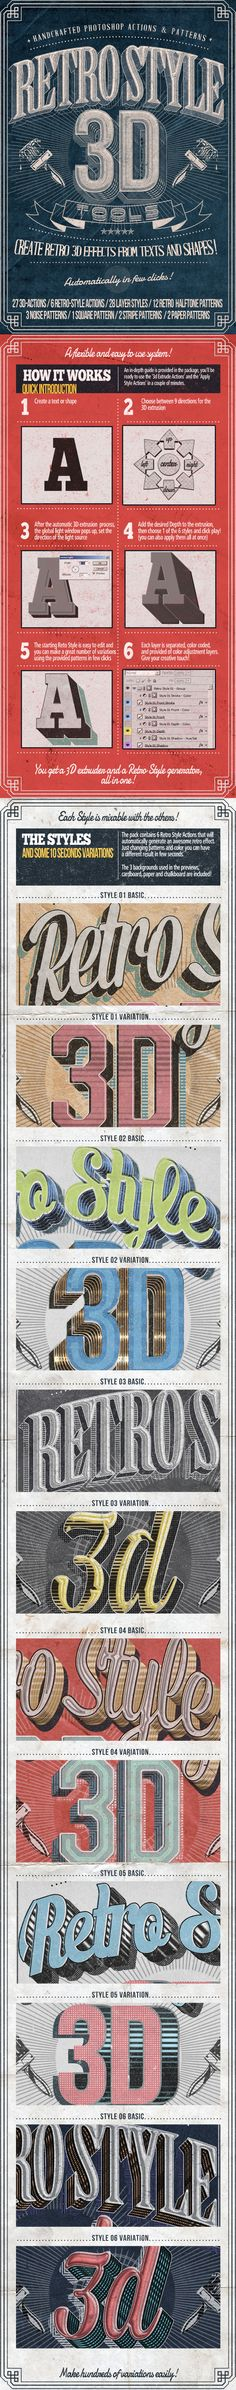 Retro Style 3D Tools - Photoshop Actions by Nuwan Panditha, via Behance